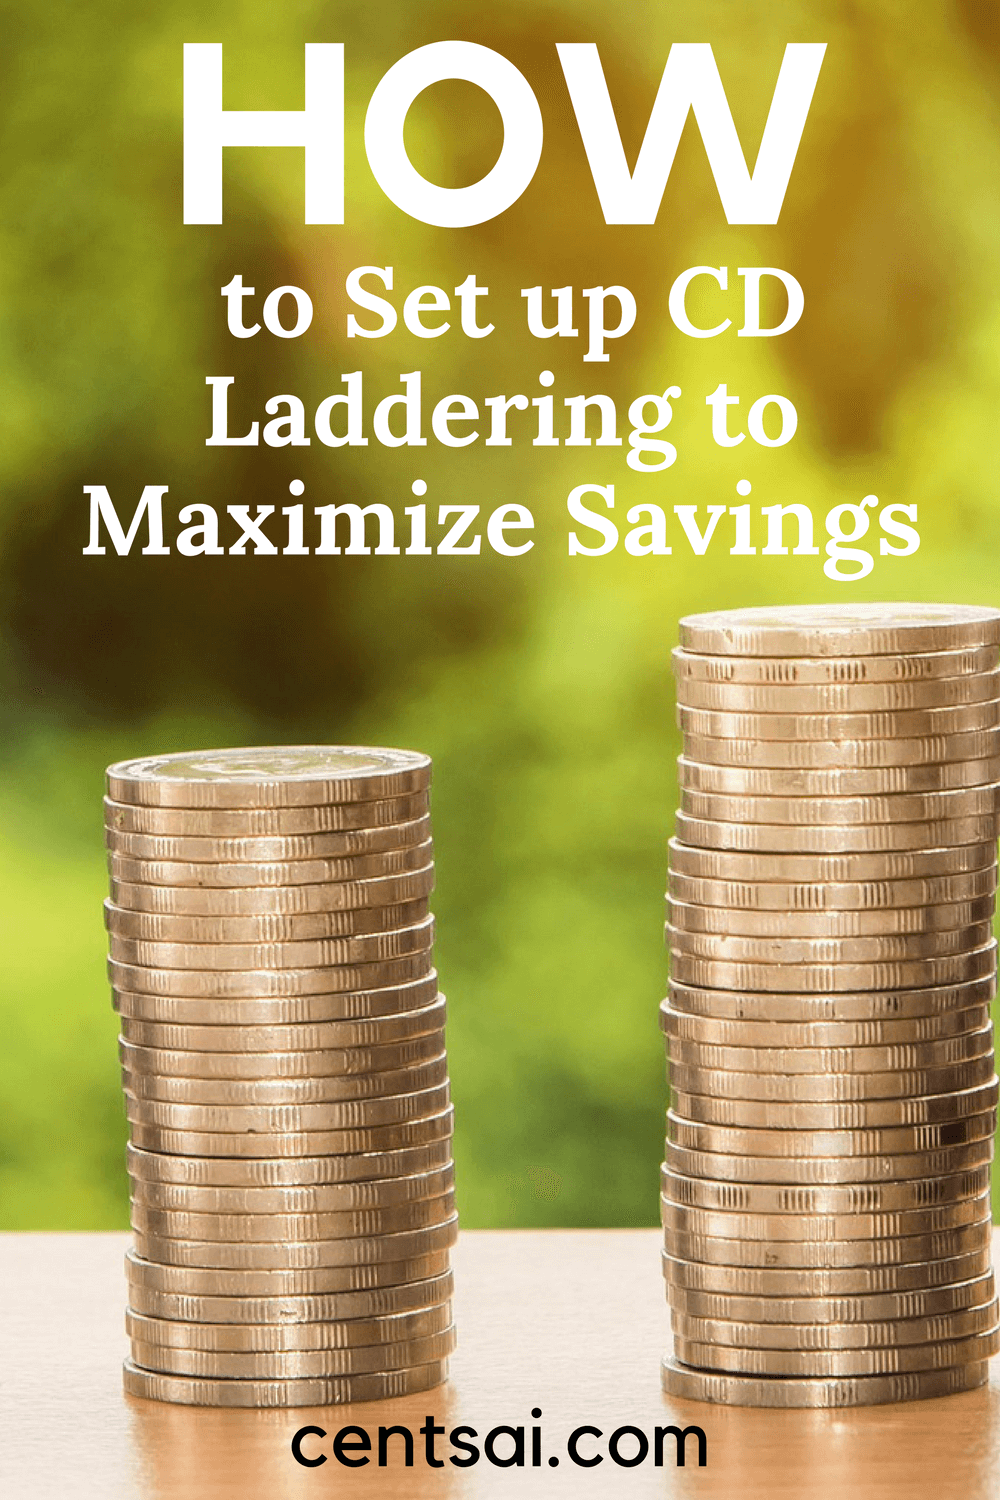 How to Set up CD Laddering to Maximize Savings